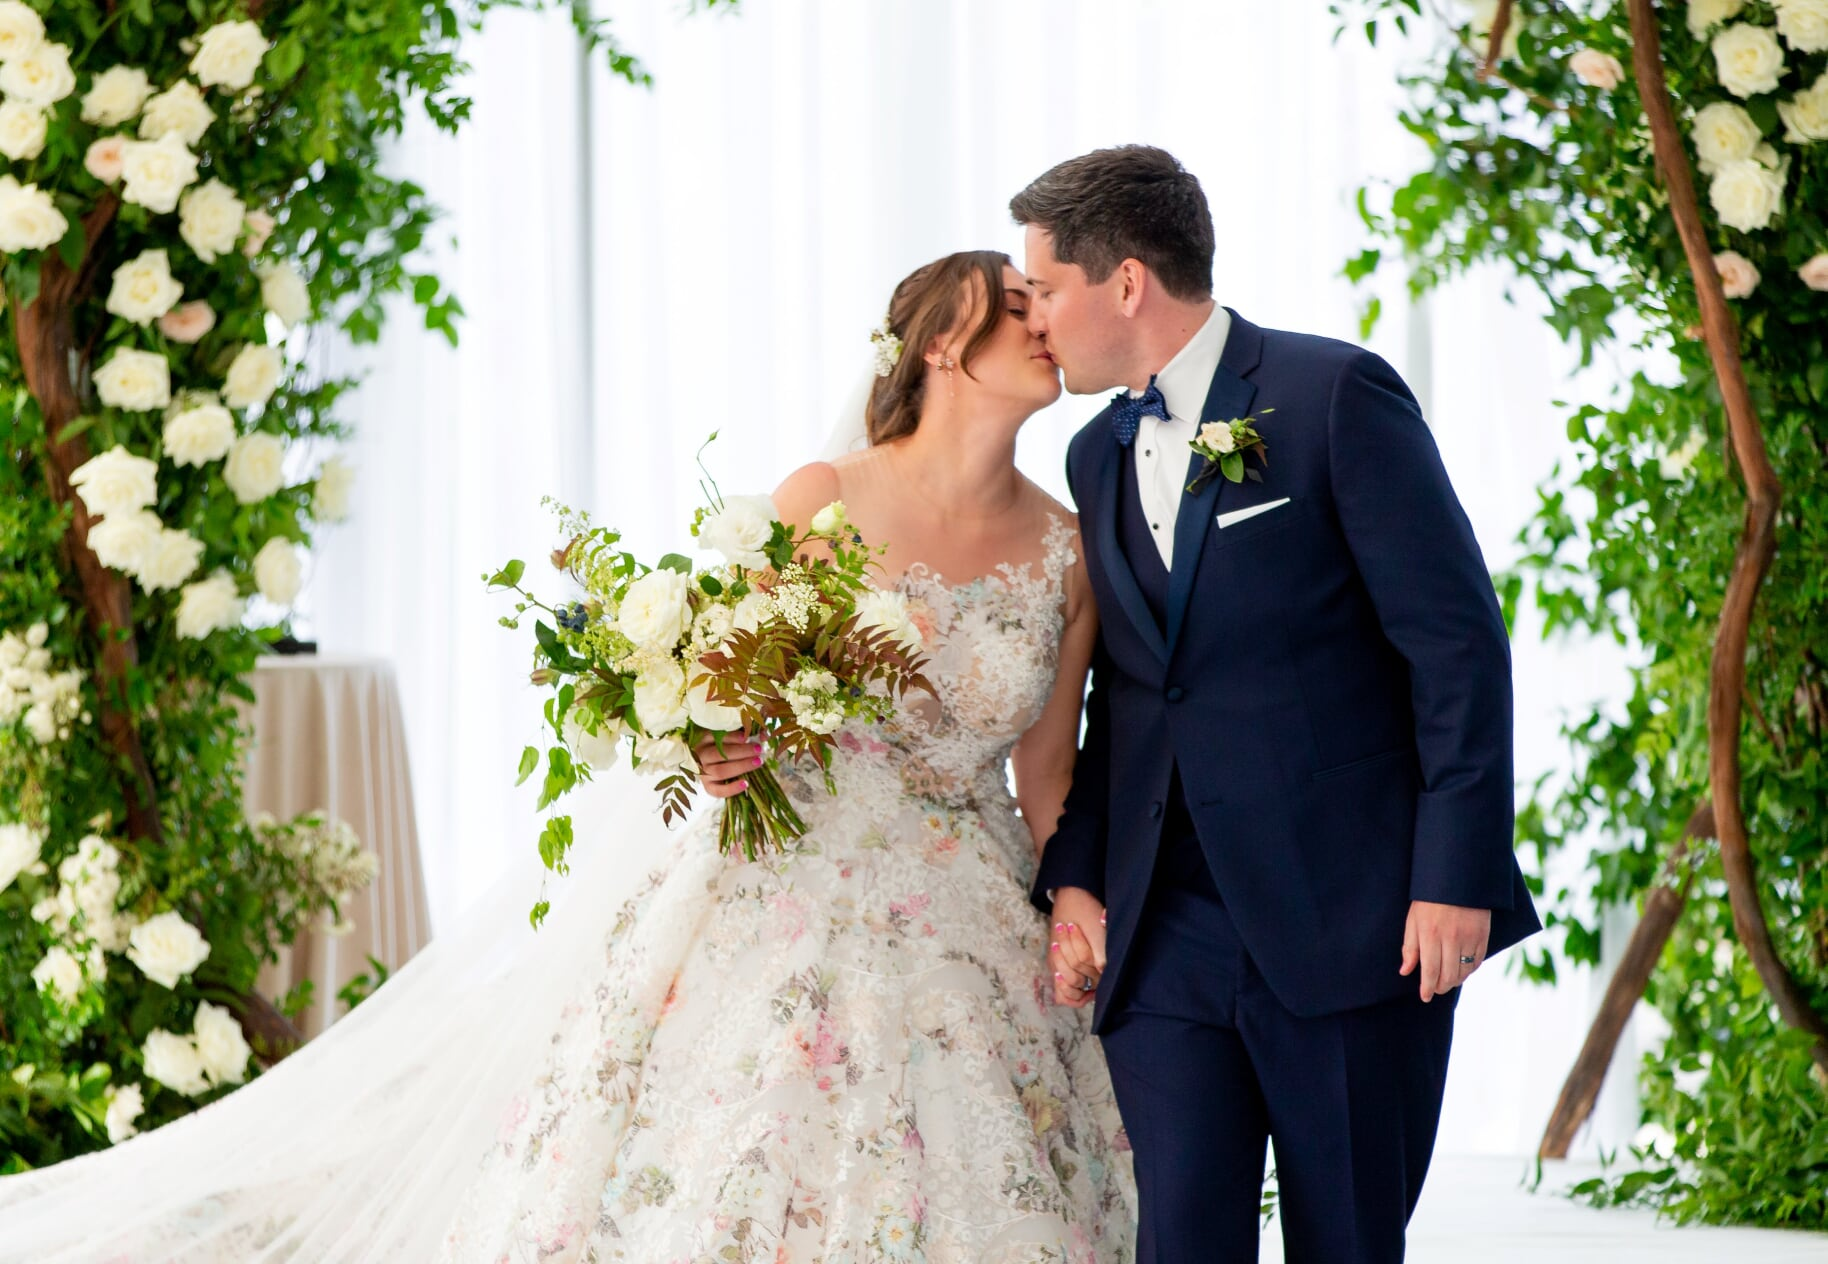 Groom and bride in floral wedding dress kiss in front of ceremony